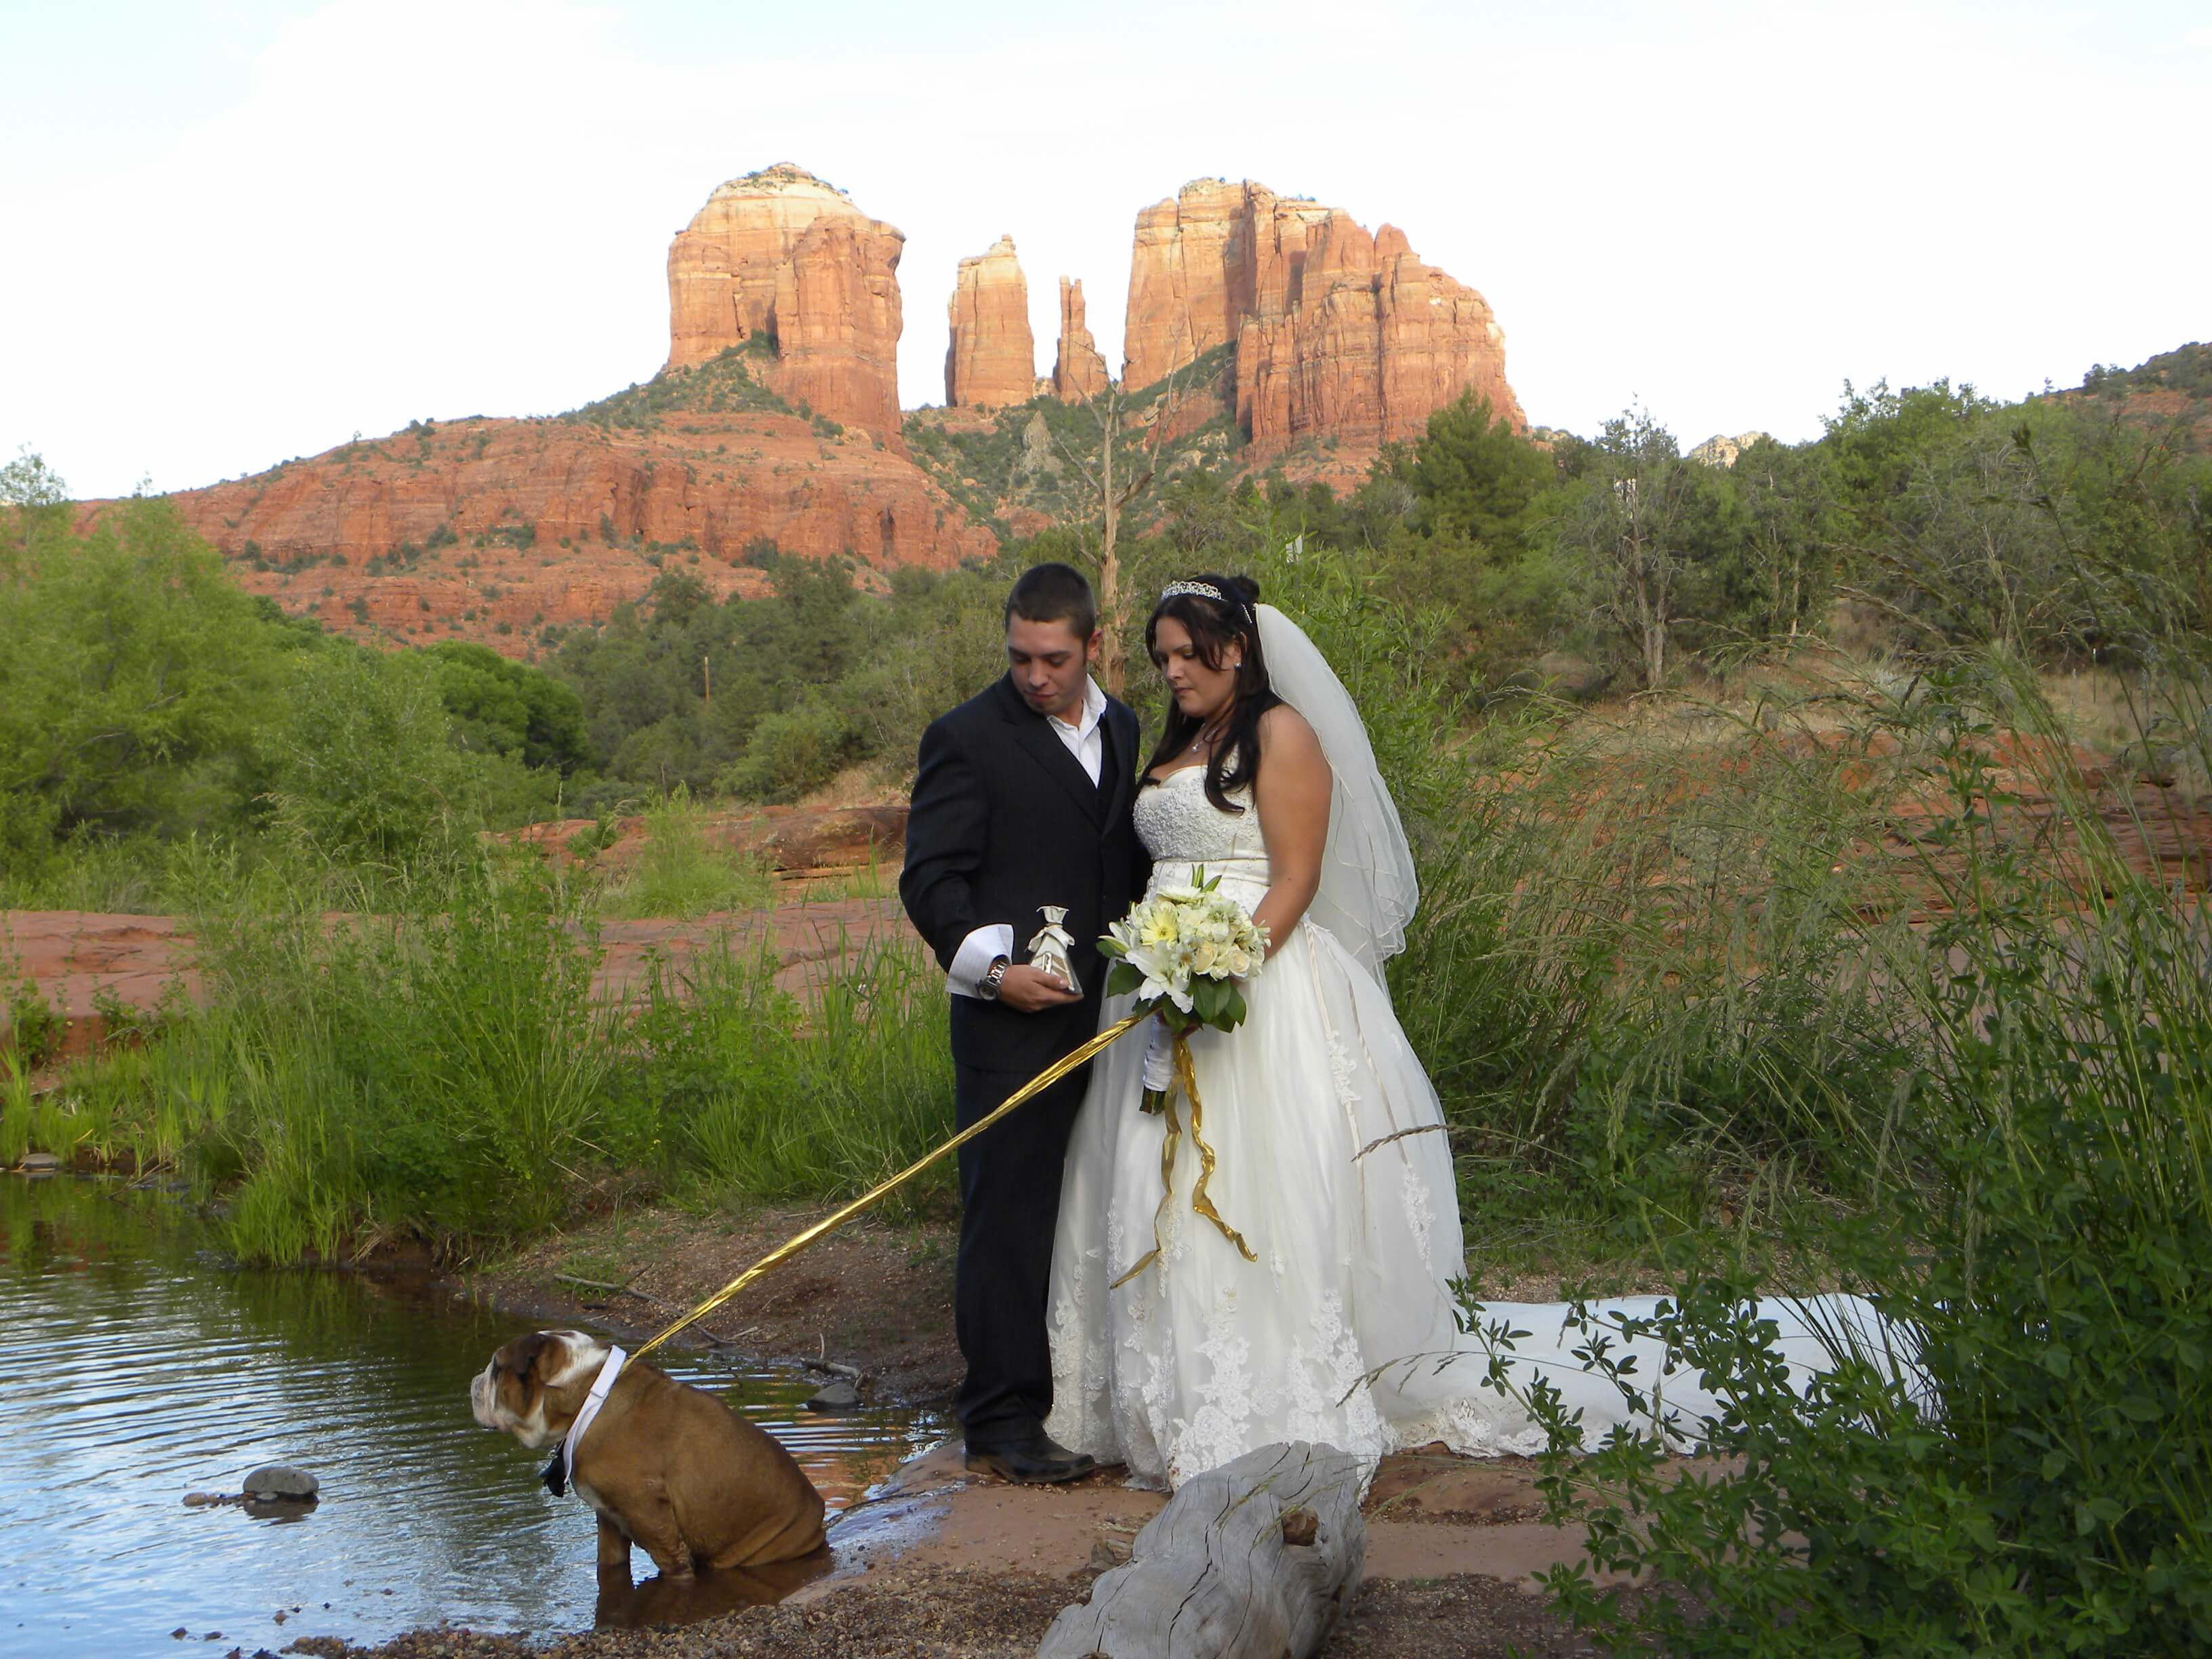 bride, groom and best pet at their wedding by the water at Red Rock Crossing in Sedona